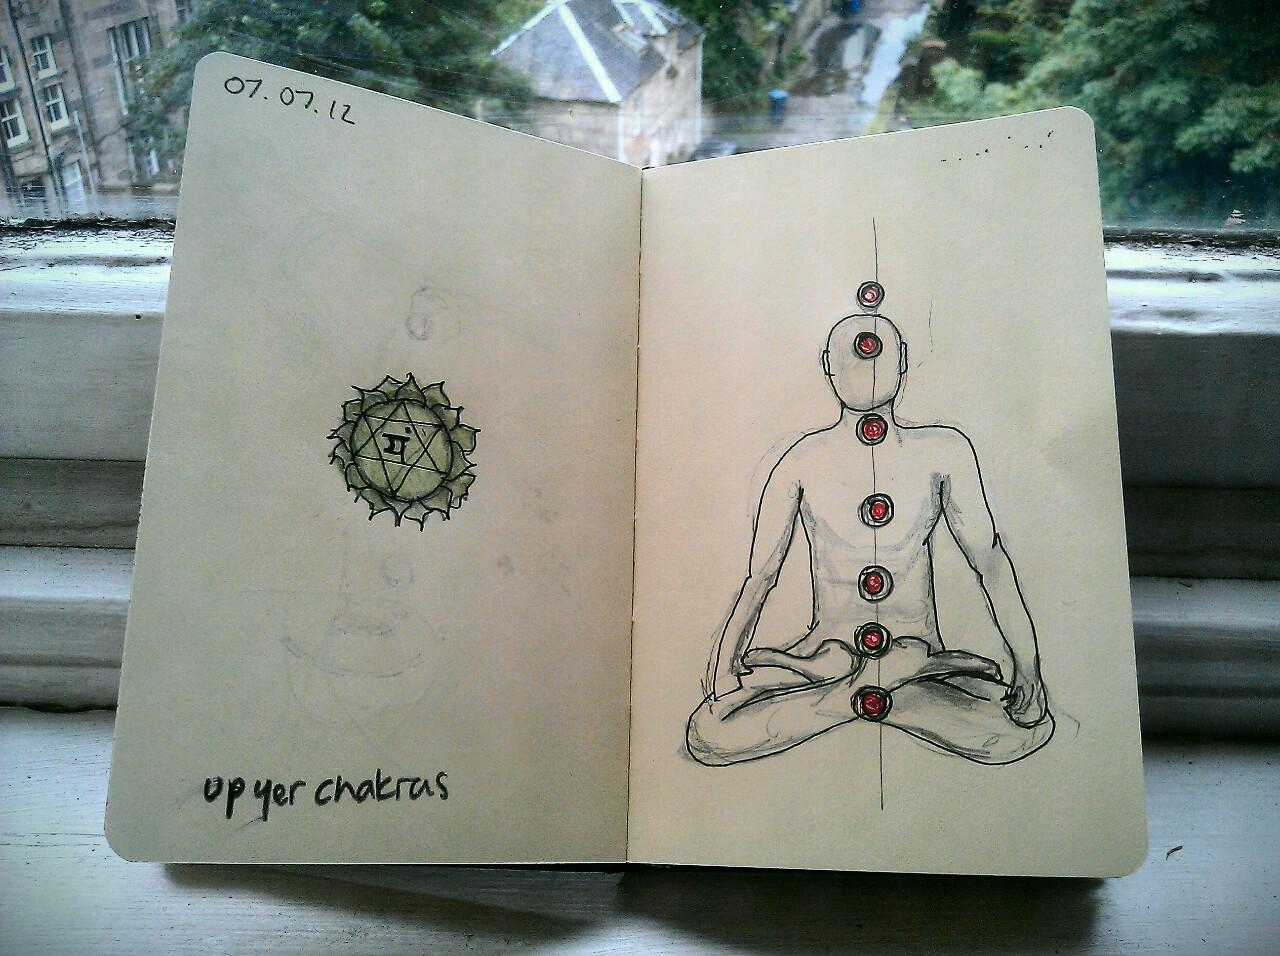 365 drawings later … day 158 … up yer chakras